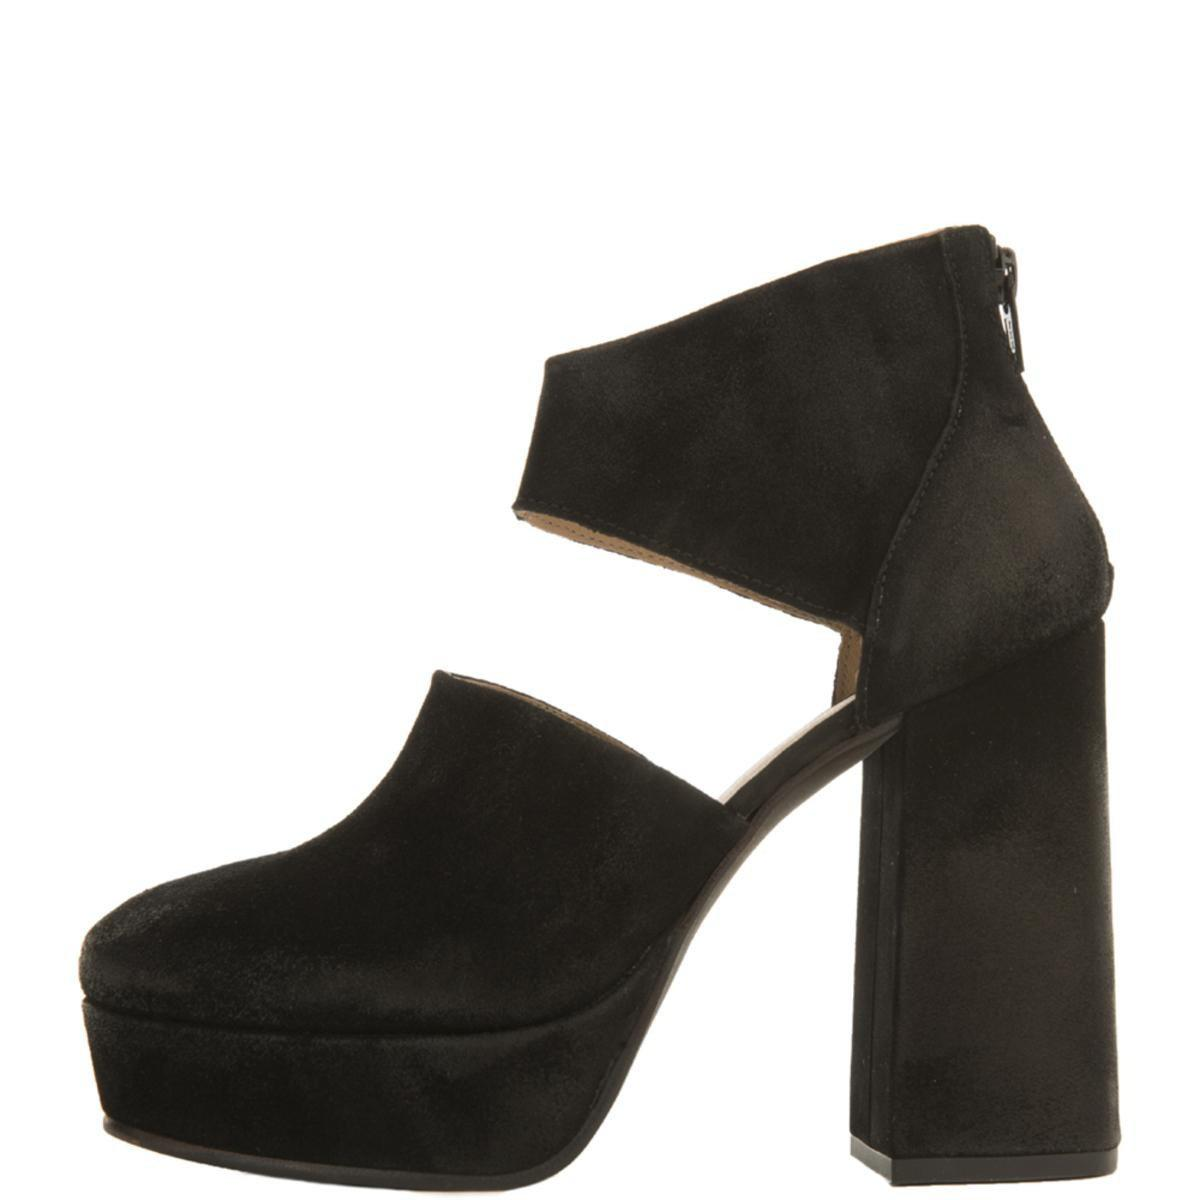 9f89d572281 Lyst - Free People Luxor Suede Platform Heels in Black